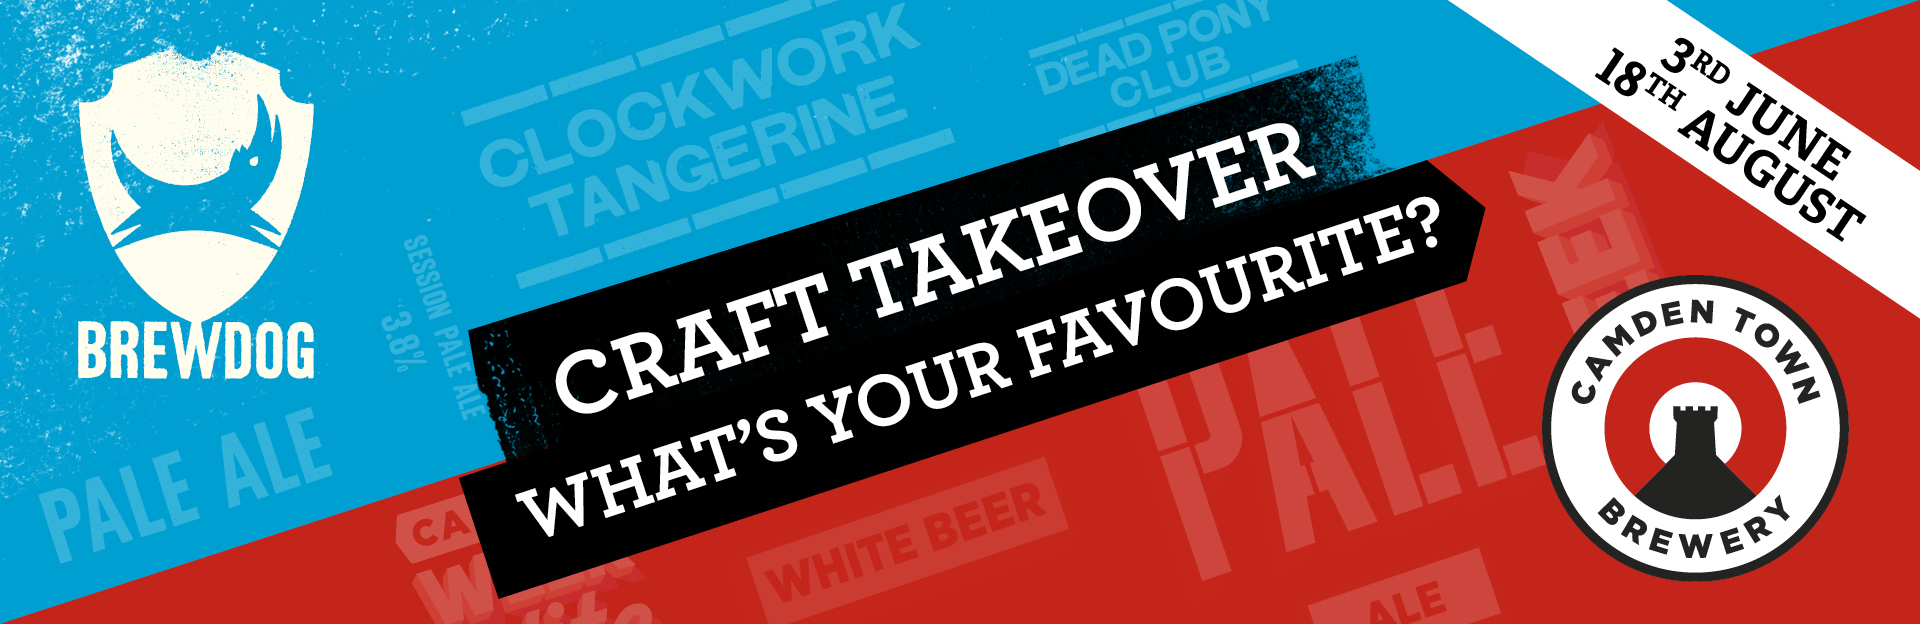 Craft Takeover at County Hotel